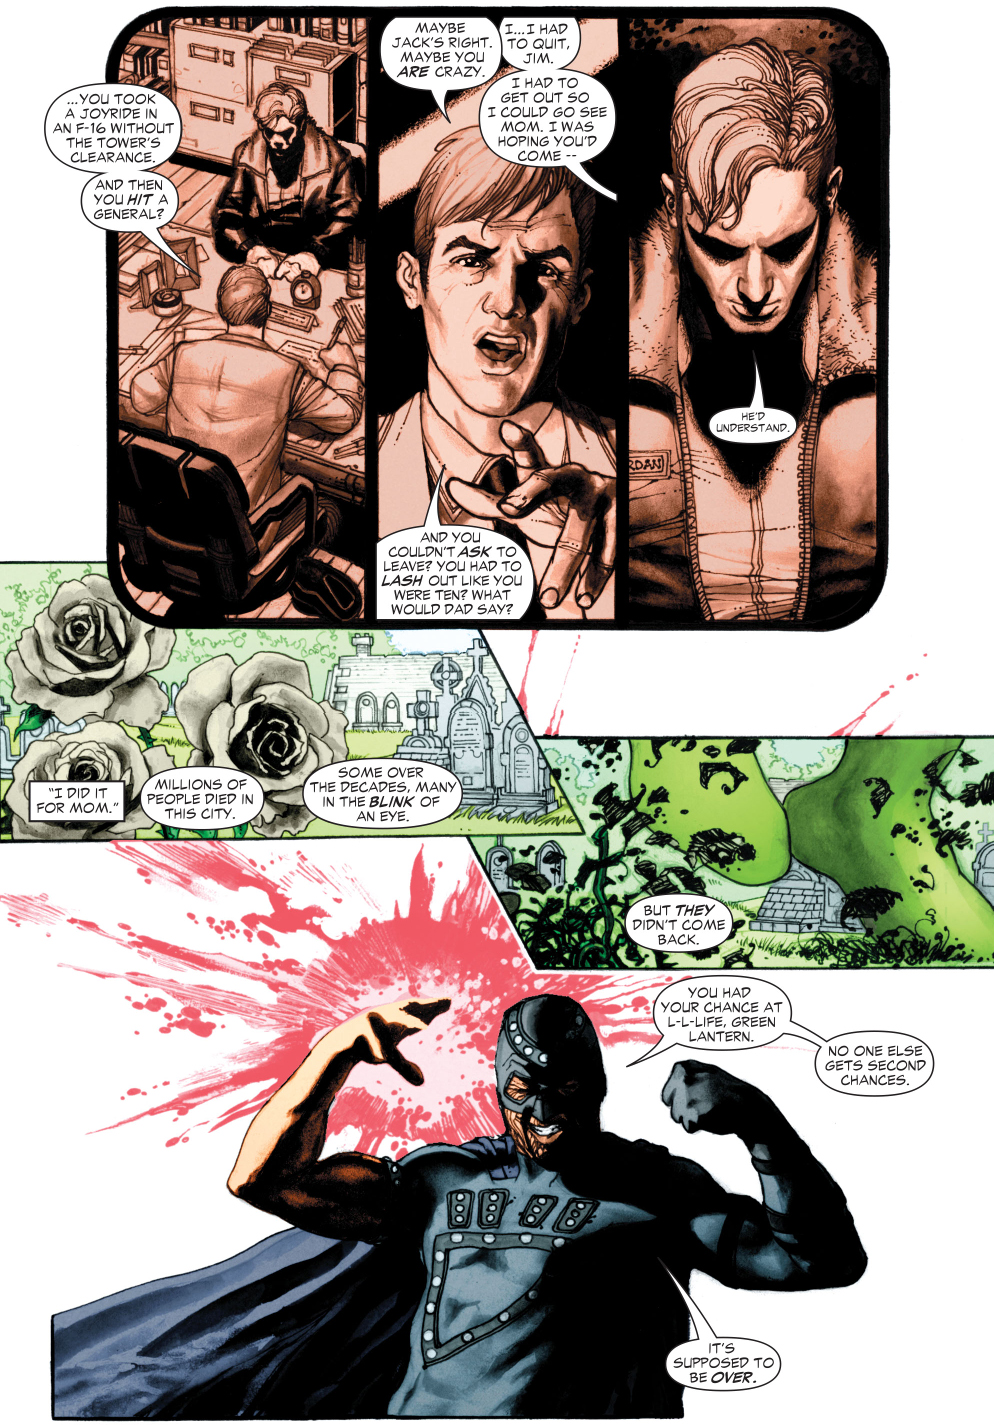 green lantern hal jordan vs black hand (green lantern vol. 4 #6)